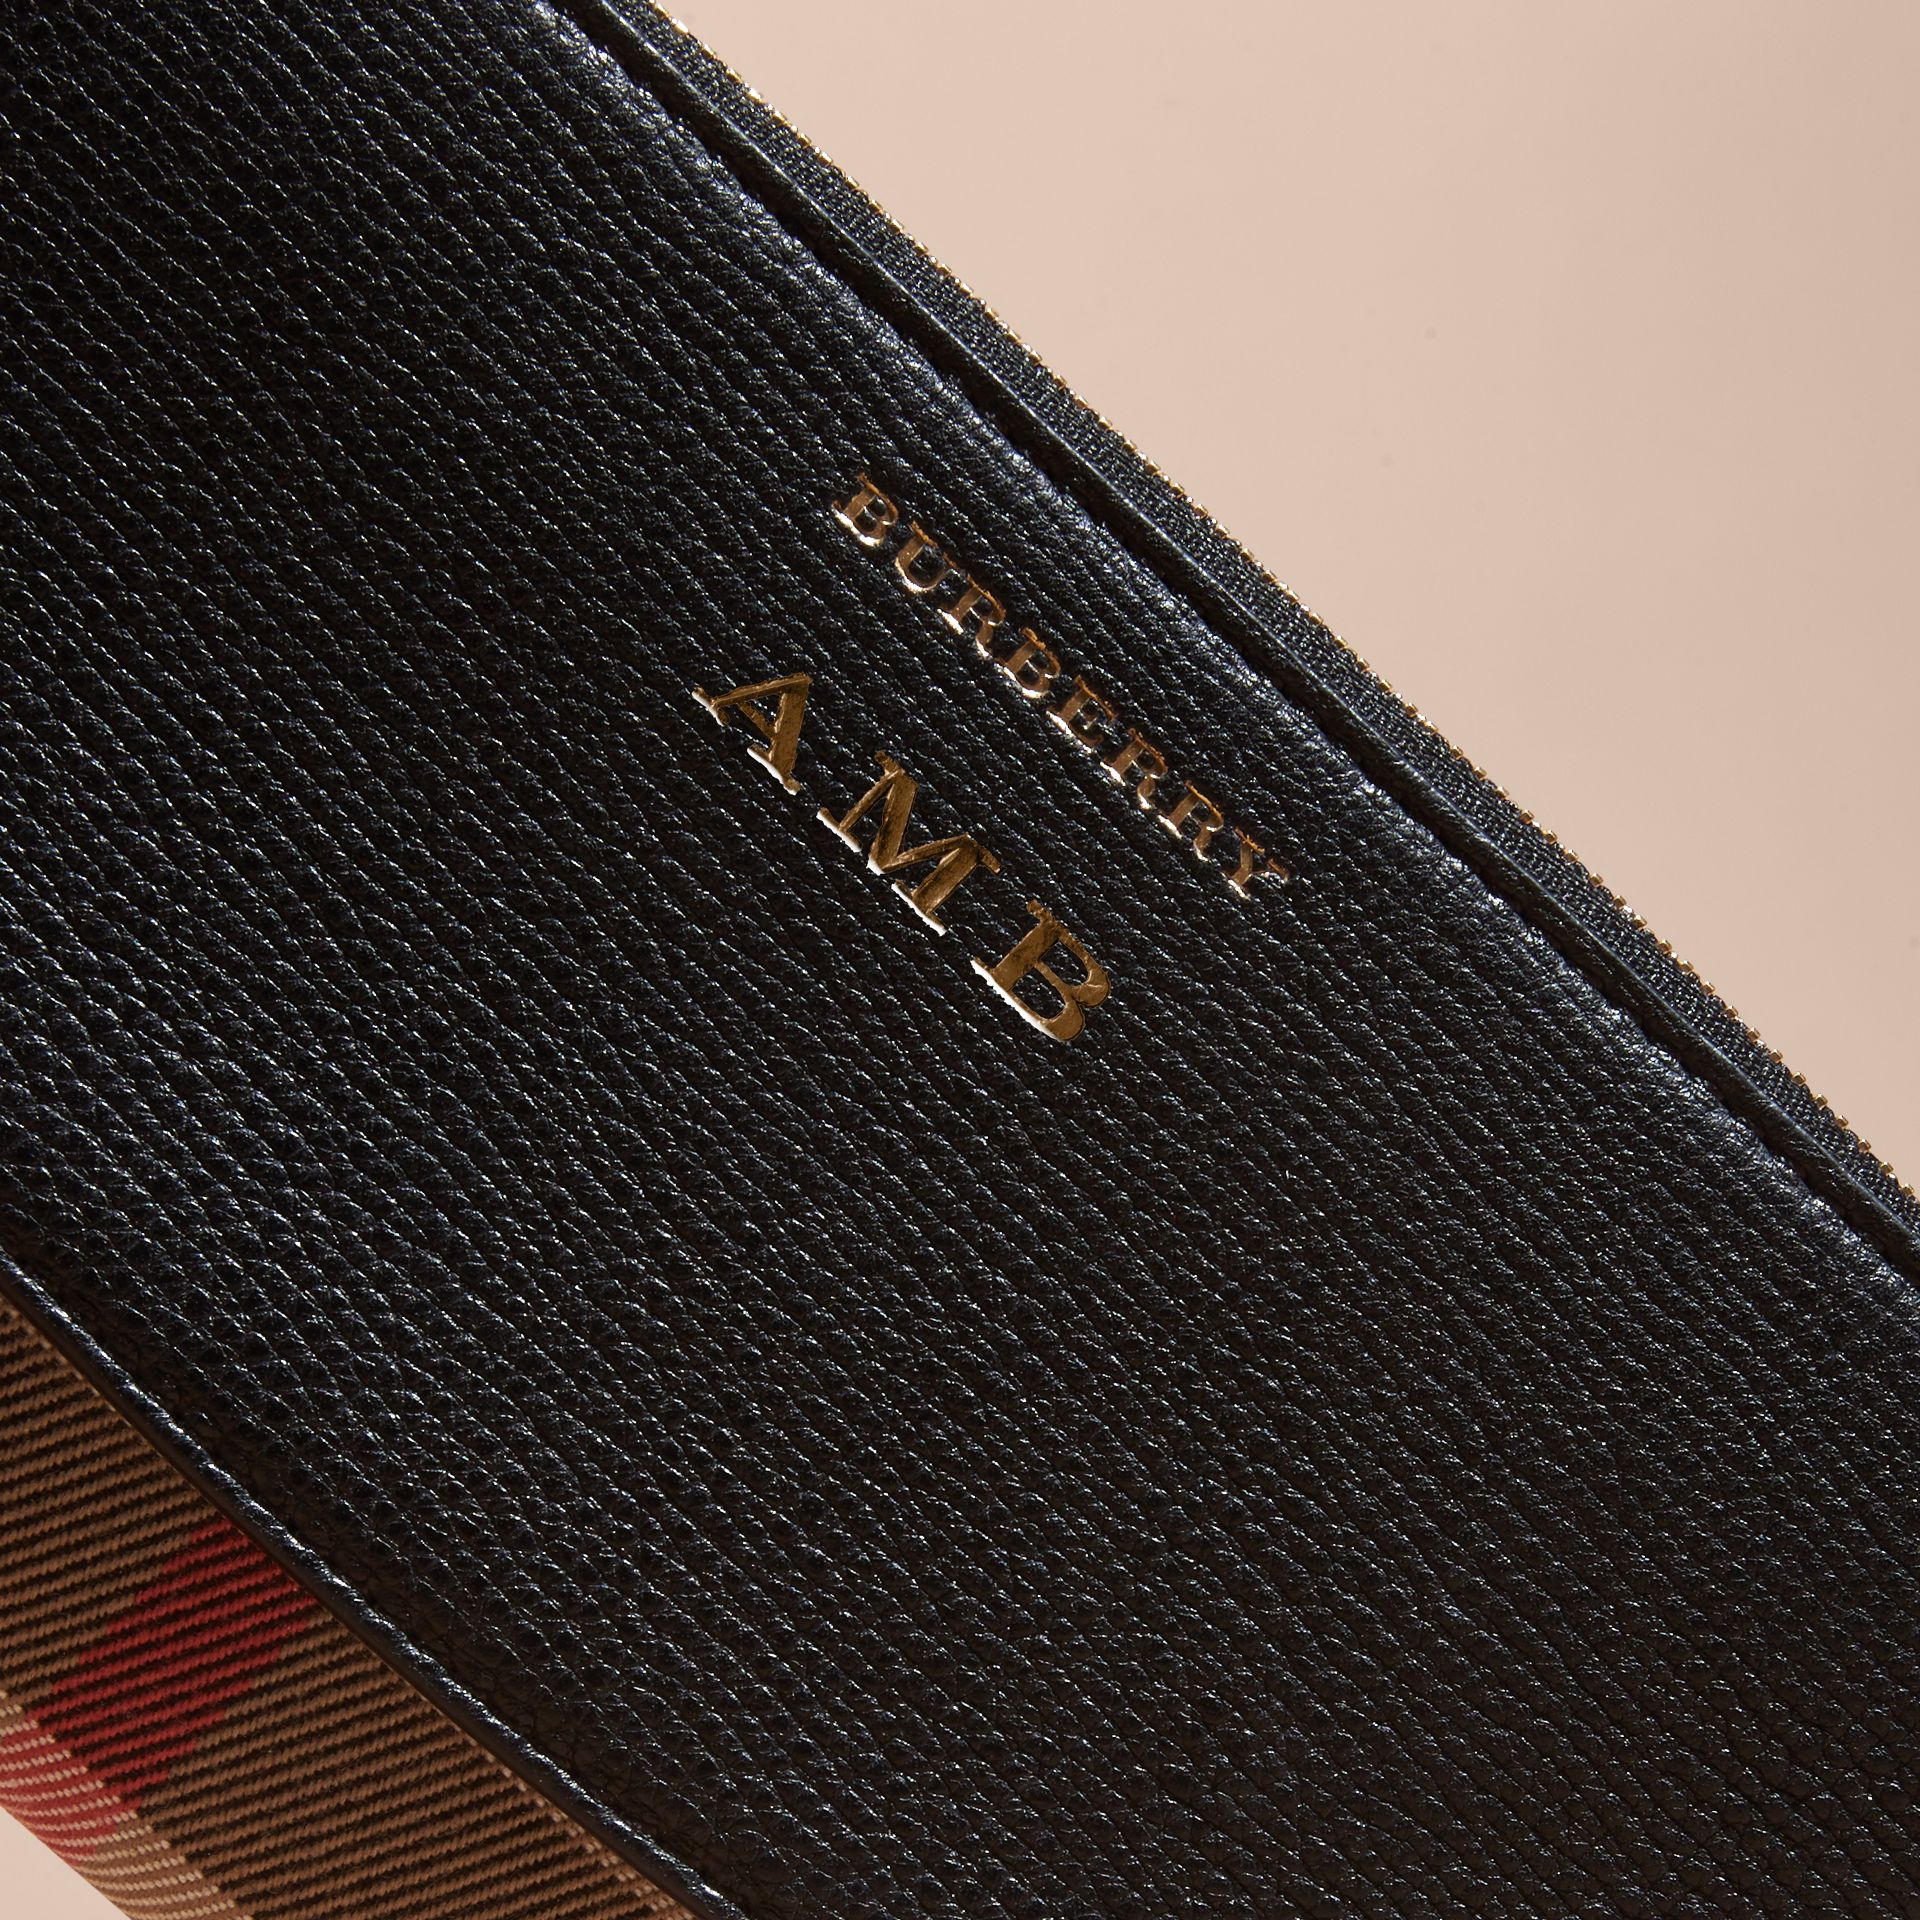 House Check and Leather Ziparound Wallet in Black - Women | Burberry Canada - gallery image 7